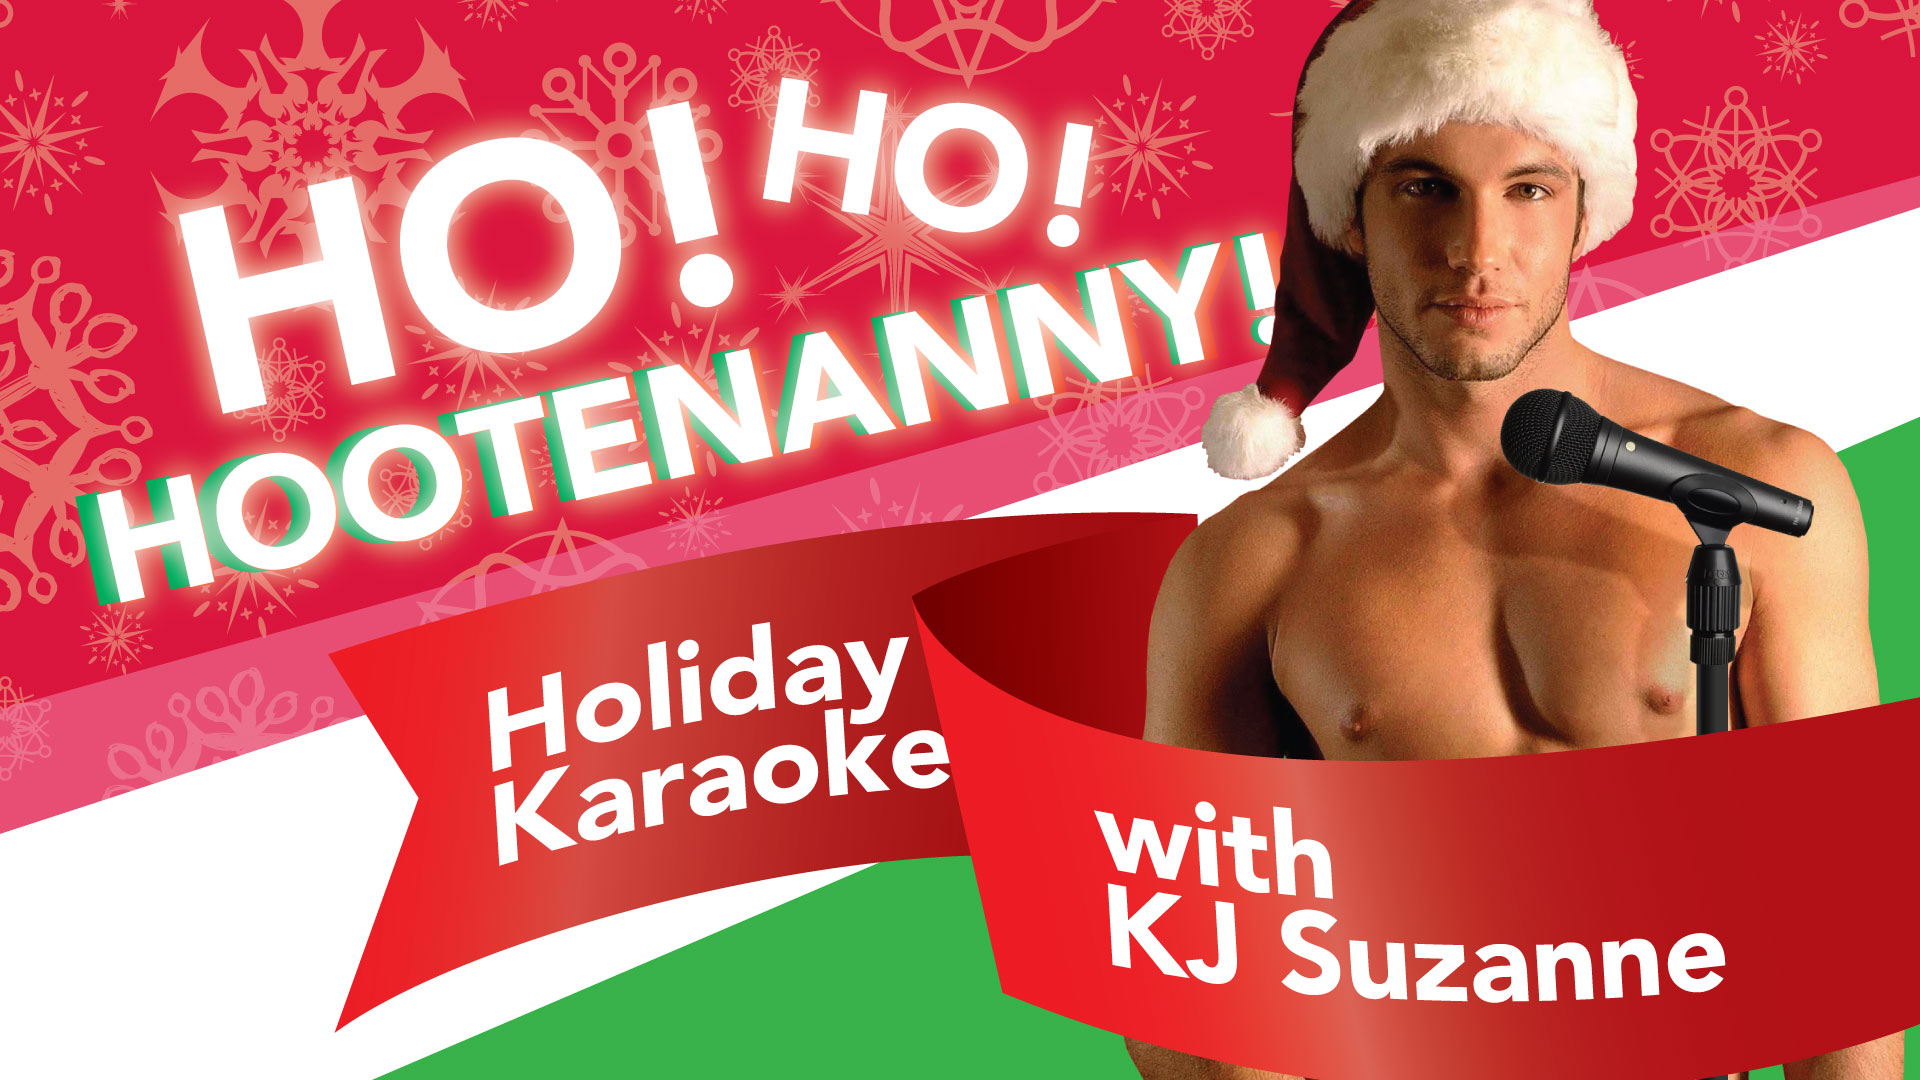 The Holidays can be such a pain in the fanny, so skip the drama for Ho! Ho! Hootenanny! Holiday Karaoke with KJ Suzanne, plus Happy Hour from 4 - 8pm. S.I.N. Specials from 9 to Midnight, and some festive cheer to make you feel right. So if you're wanting to go out this Christmas Eve day, Head down to Scandals to Drink and be Gay.   Make sure to join the event on facebook here!